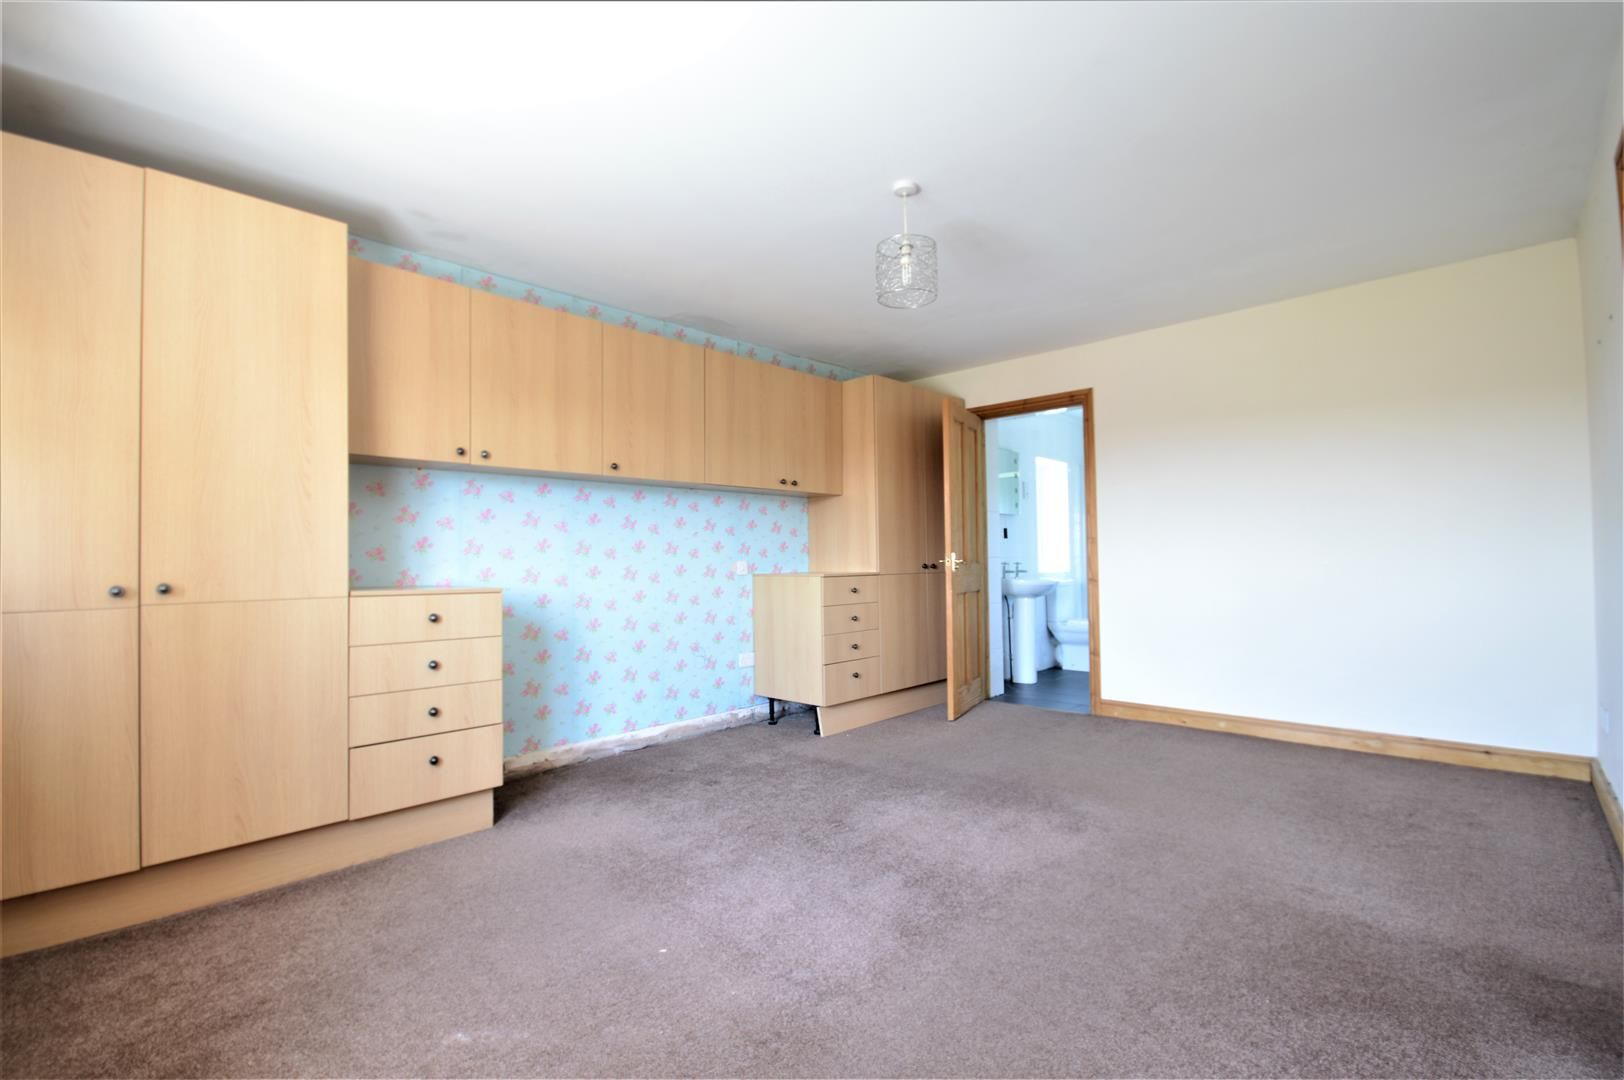 5 bed detached for sale in Sutton St. Nicholas  - Property Image 12